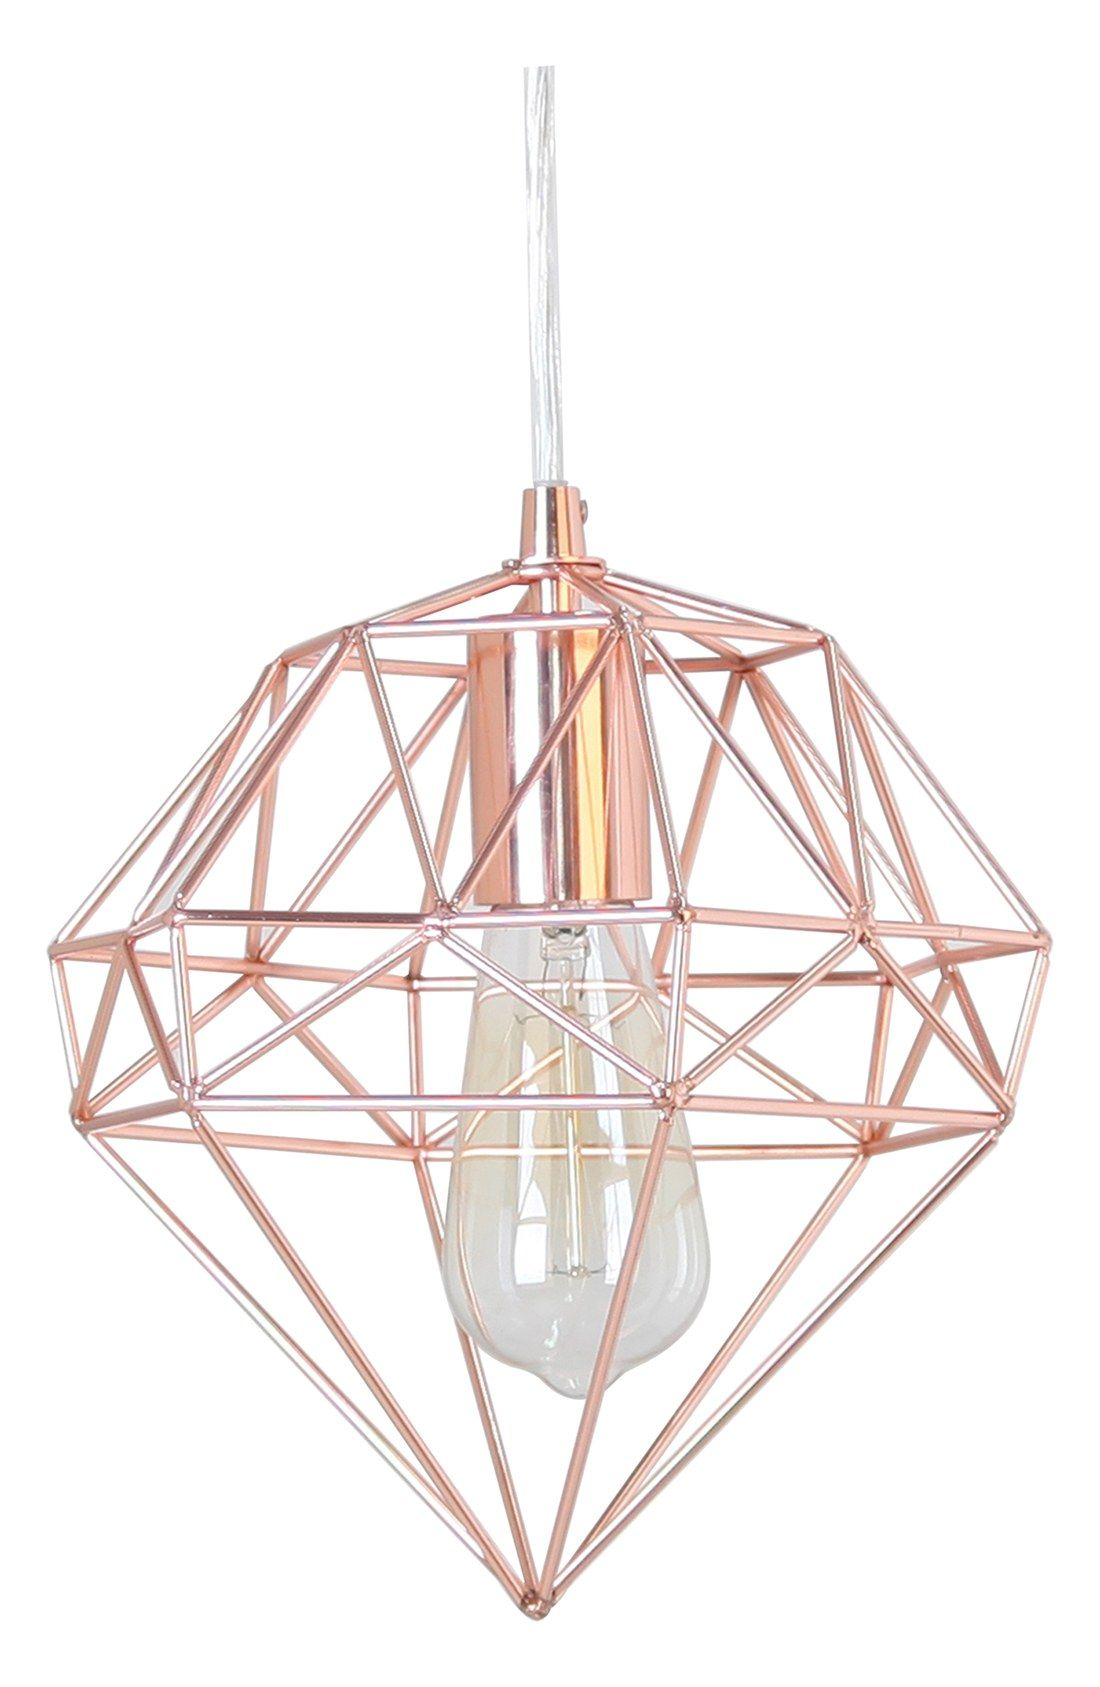 Cool Hanging Lights For Bedroom How Cool Is This Modern Rose Gold Hanging Lamp In The Shape Of A